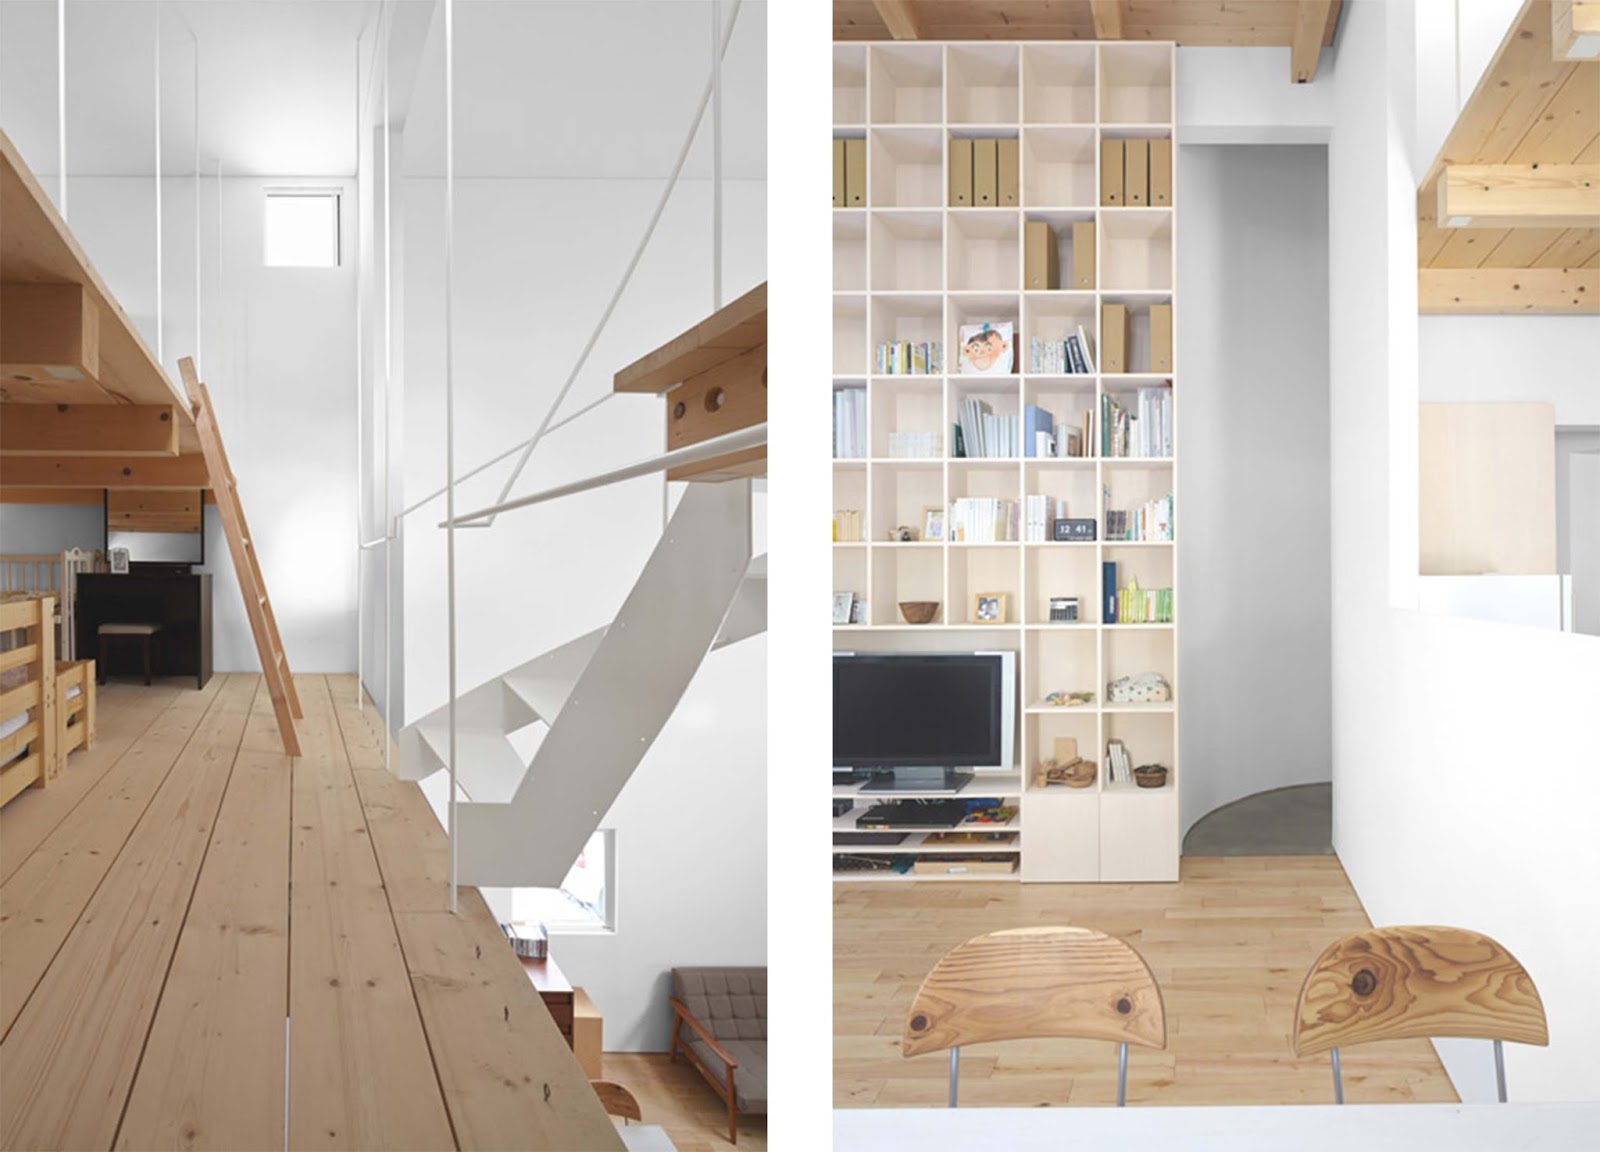 Case house by jun igarashi architects arc art blog by for Case del giappone